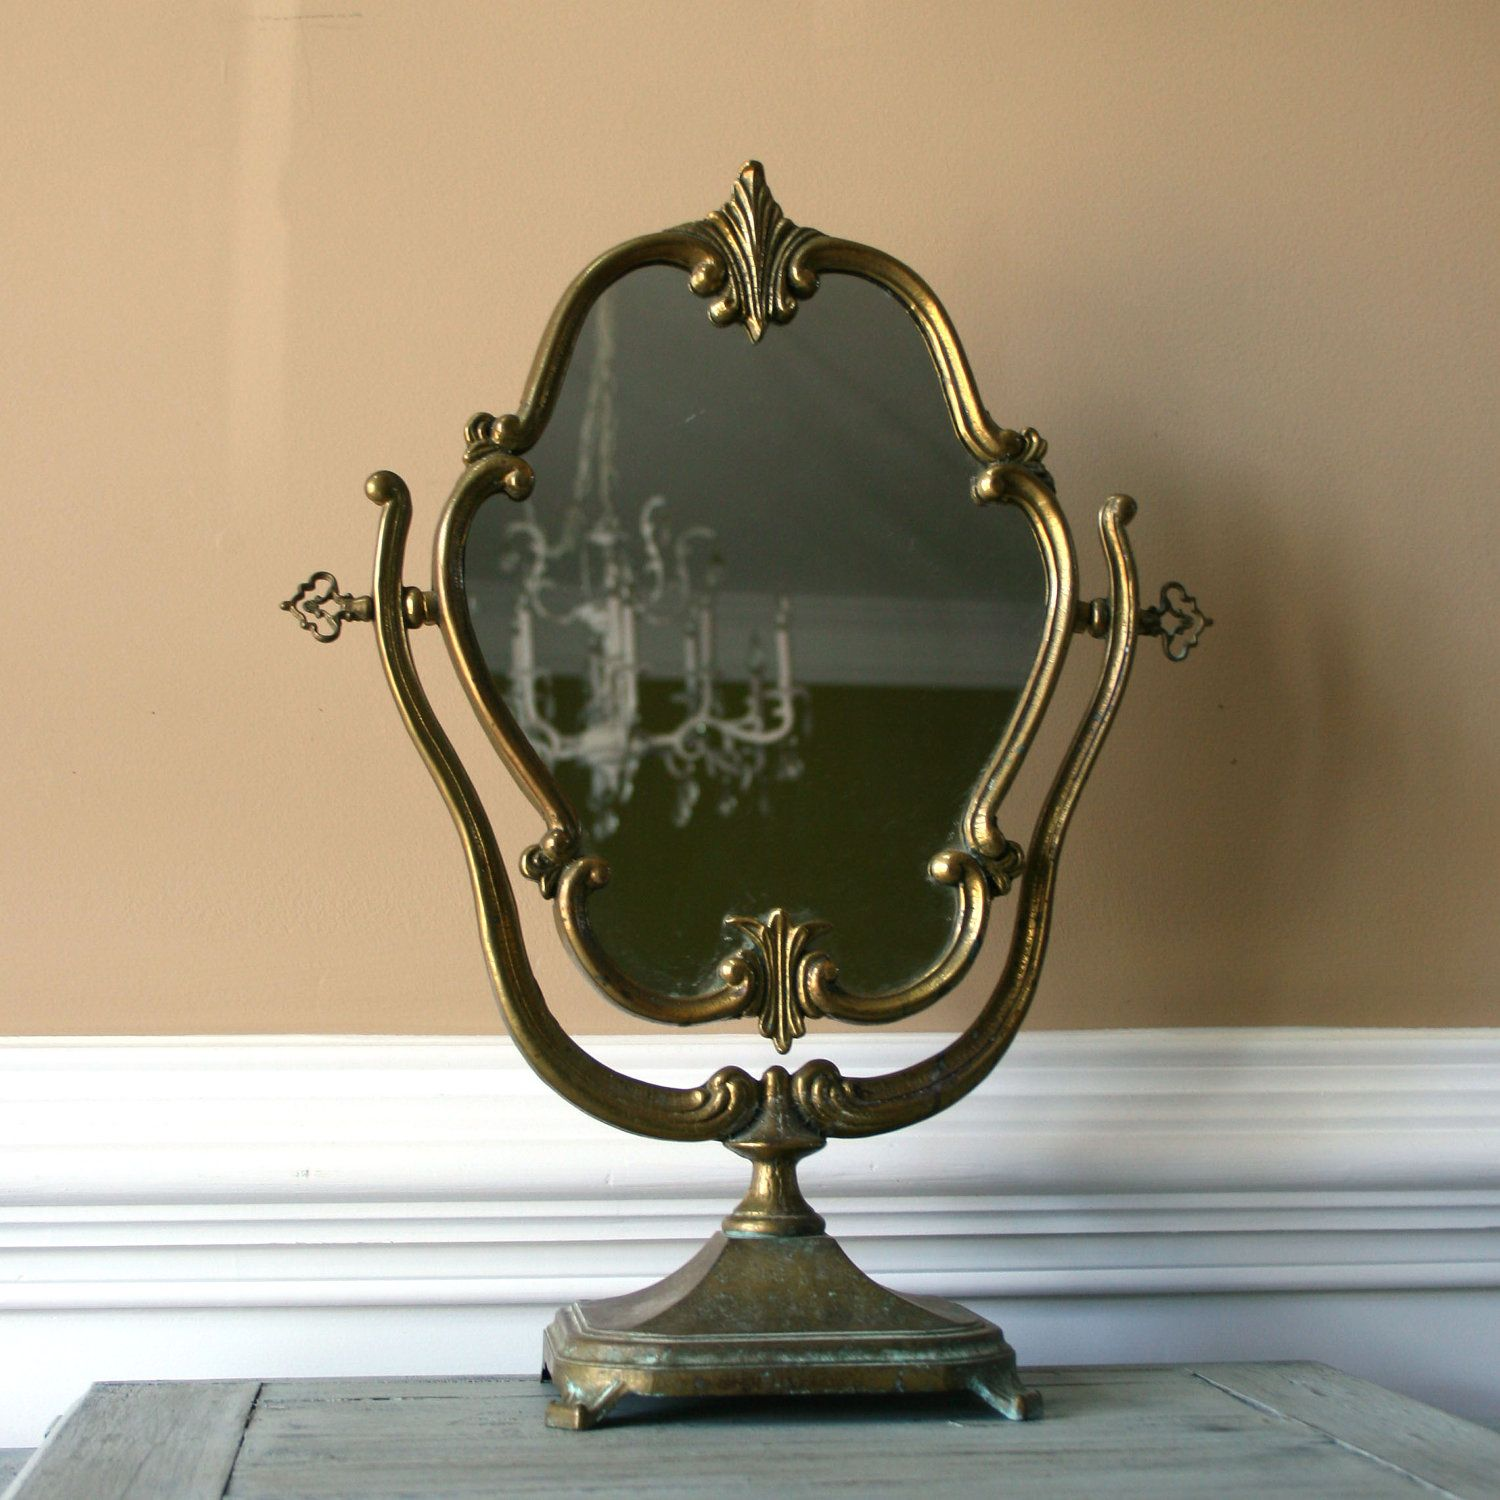 Antique Vanity Mirror with Stand. Makeup Ornate Mirror